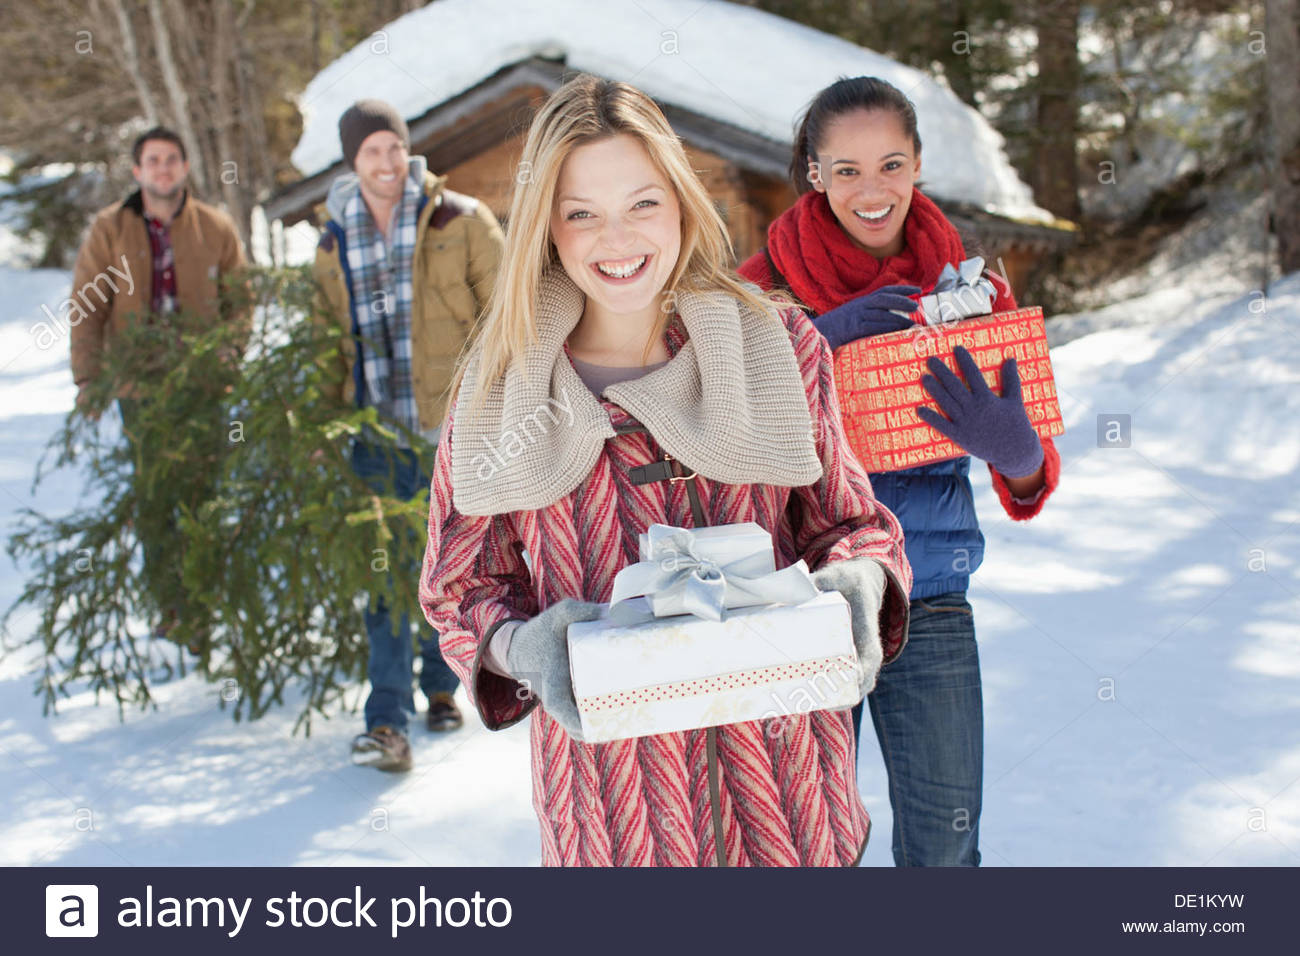 Portrait of smiling couples with fresh cut Christmas tree and gifts in snow - Stock Image